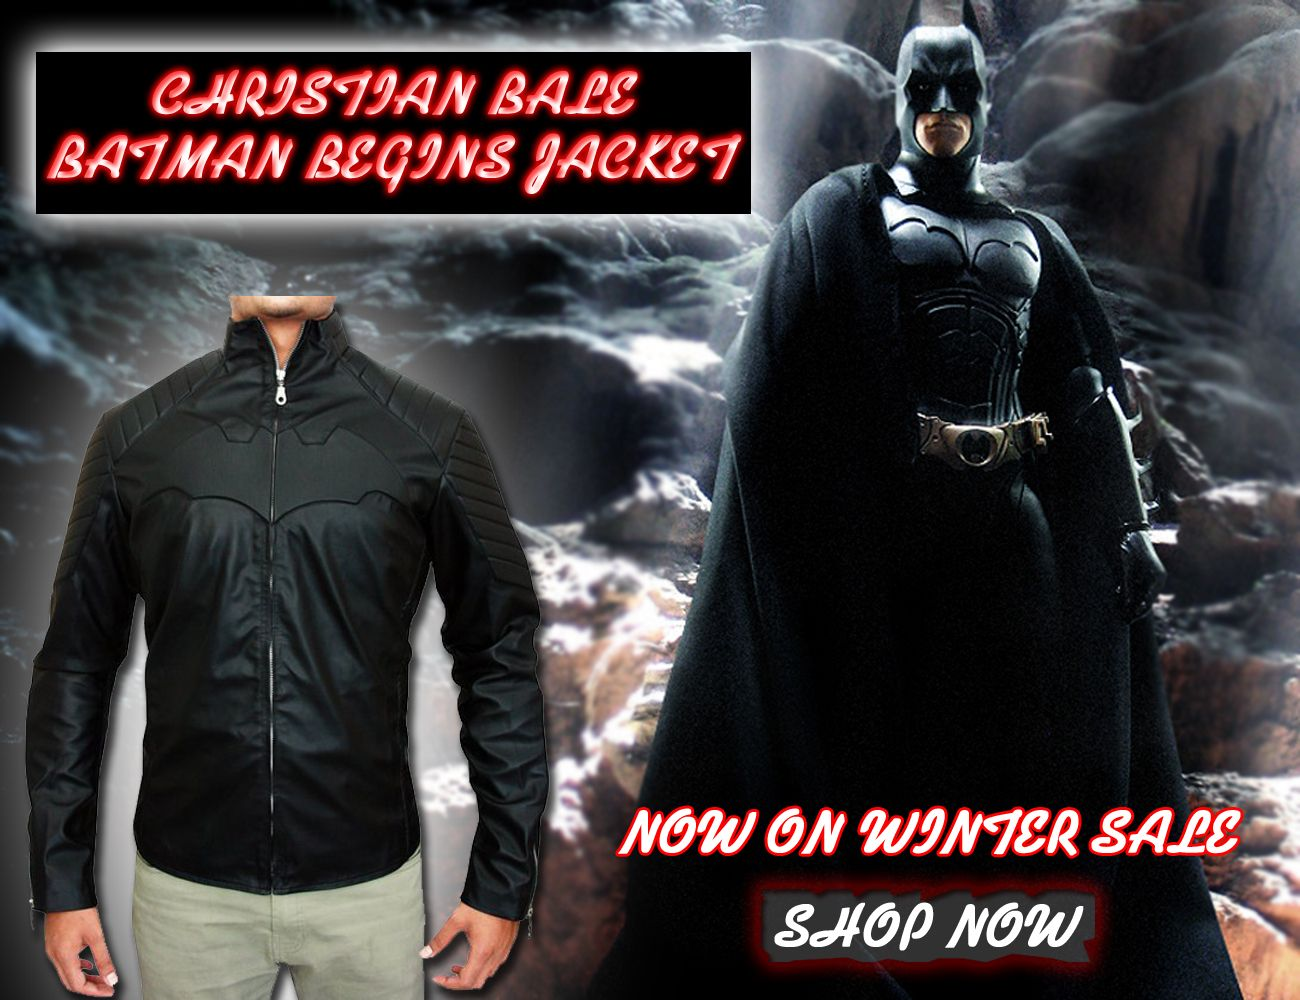 The admirable Batman Begins Christian Bale Jacket is available in our online store, made of genuine and durable quality of real leather, is available for only $190 at Bonton Wear. Save up to 40% on the purchasing of every costume from our winter sale collection. This jacket is great for clubs, parties, Cosplay and in winter season. Hurry up! Buy it now  Please Visit: http://www.amazon.com/BontonWear-Batman-Begins-Christian-Jacket/dp/B00N3PSY20